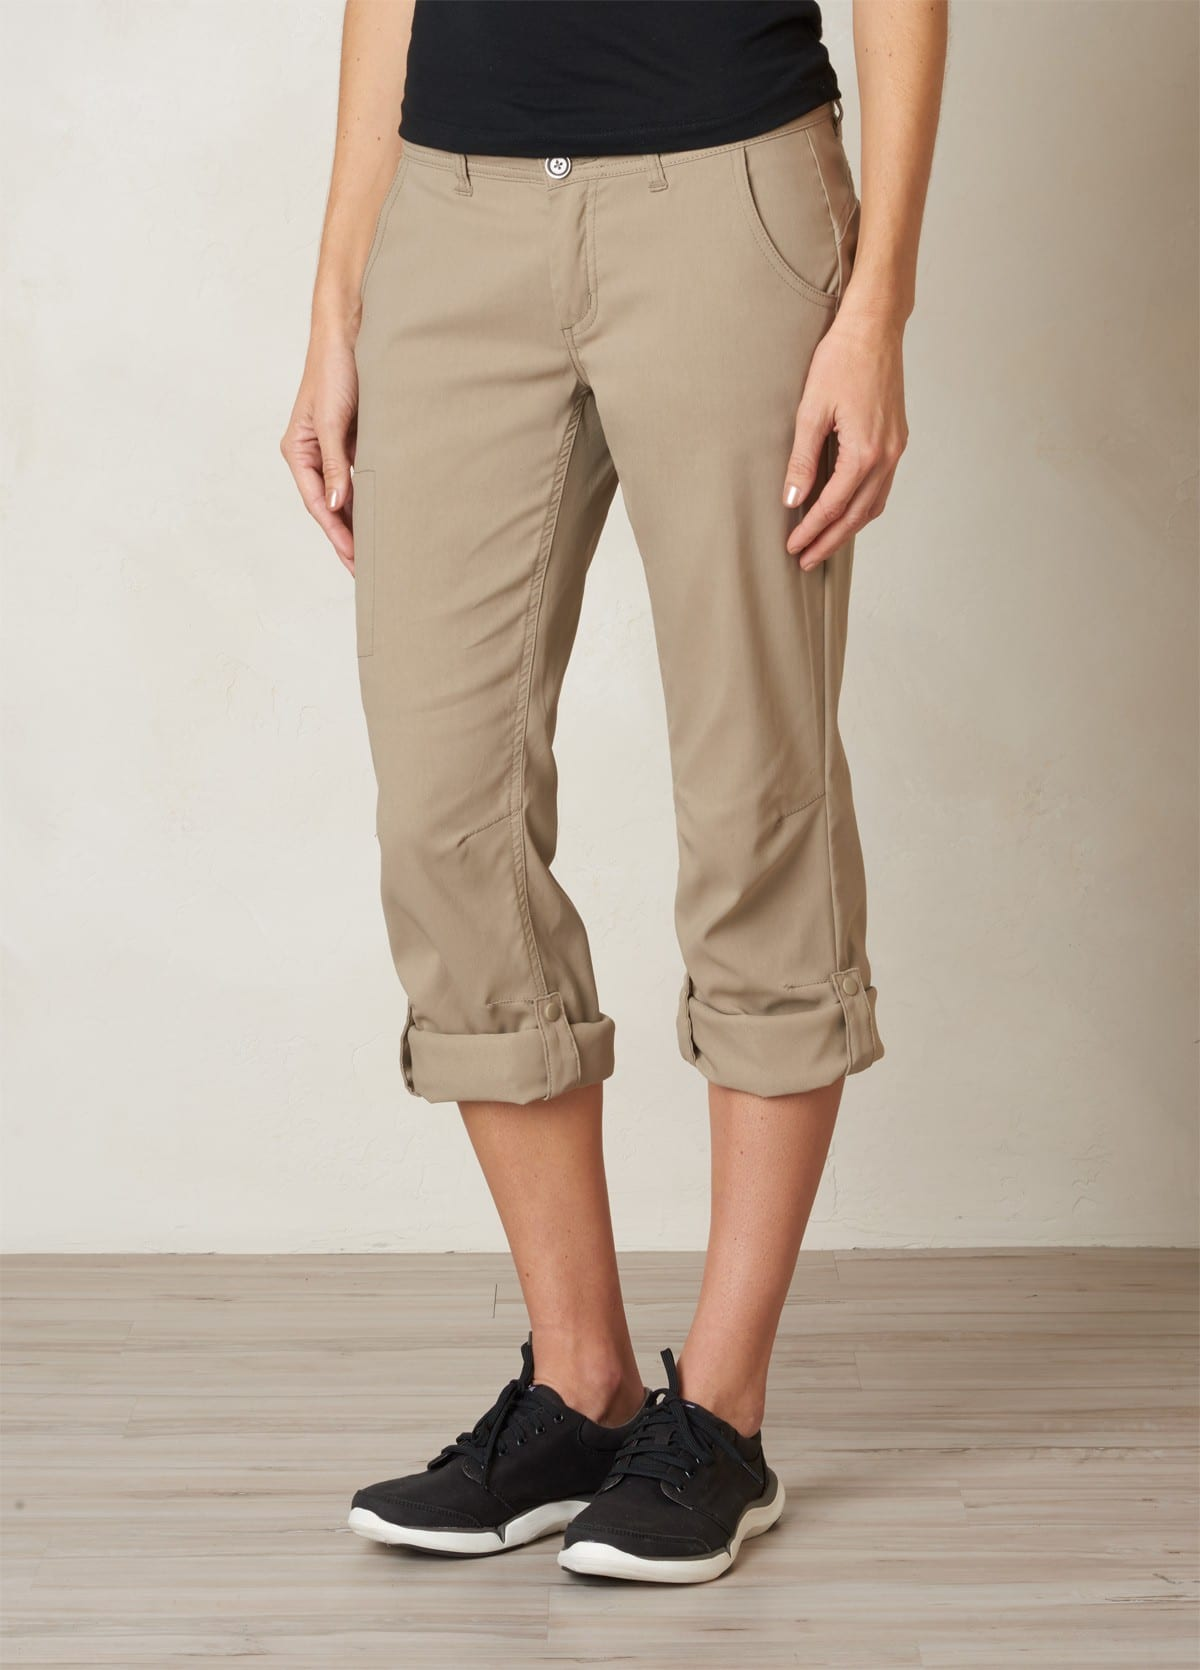 Travel Jeans Womens - Jeans Frenchafricana.Org 2018